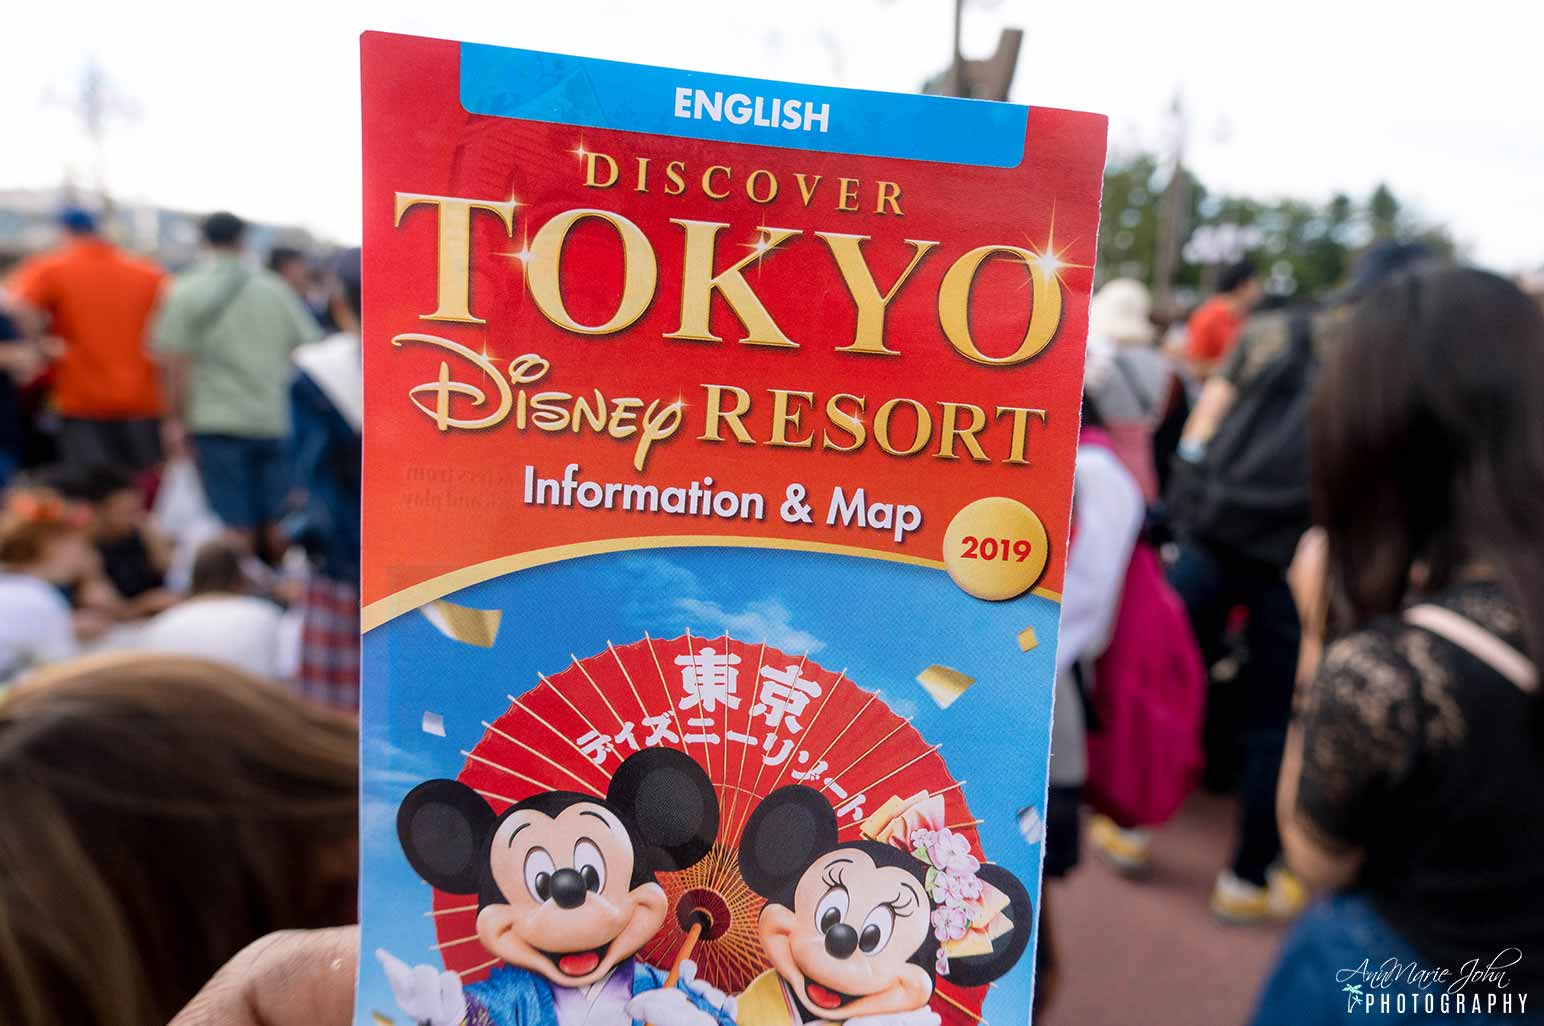 How To Make The Most Of Your Trip To Tokyo Disneyland